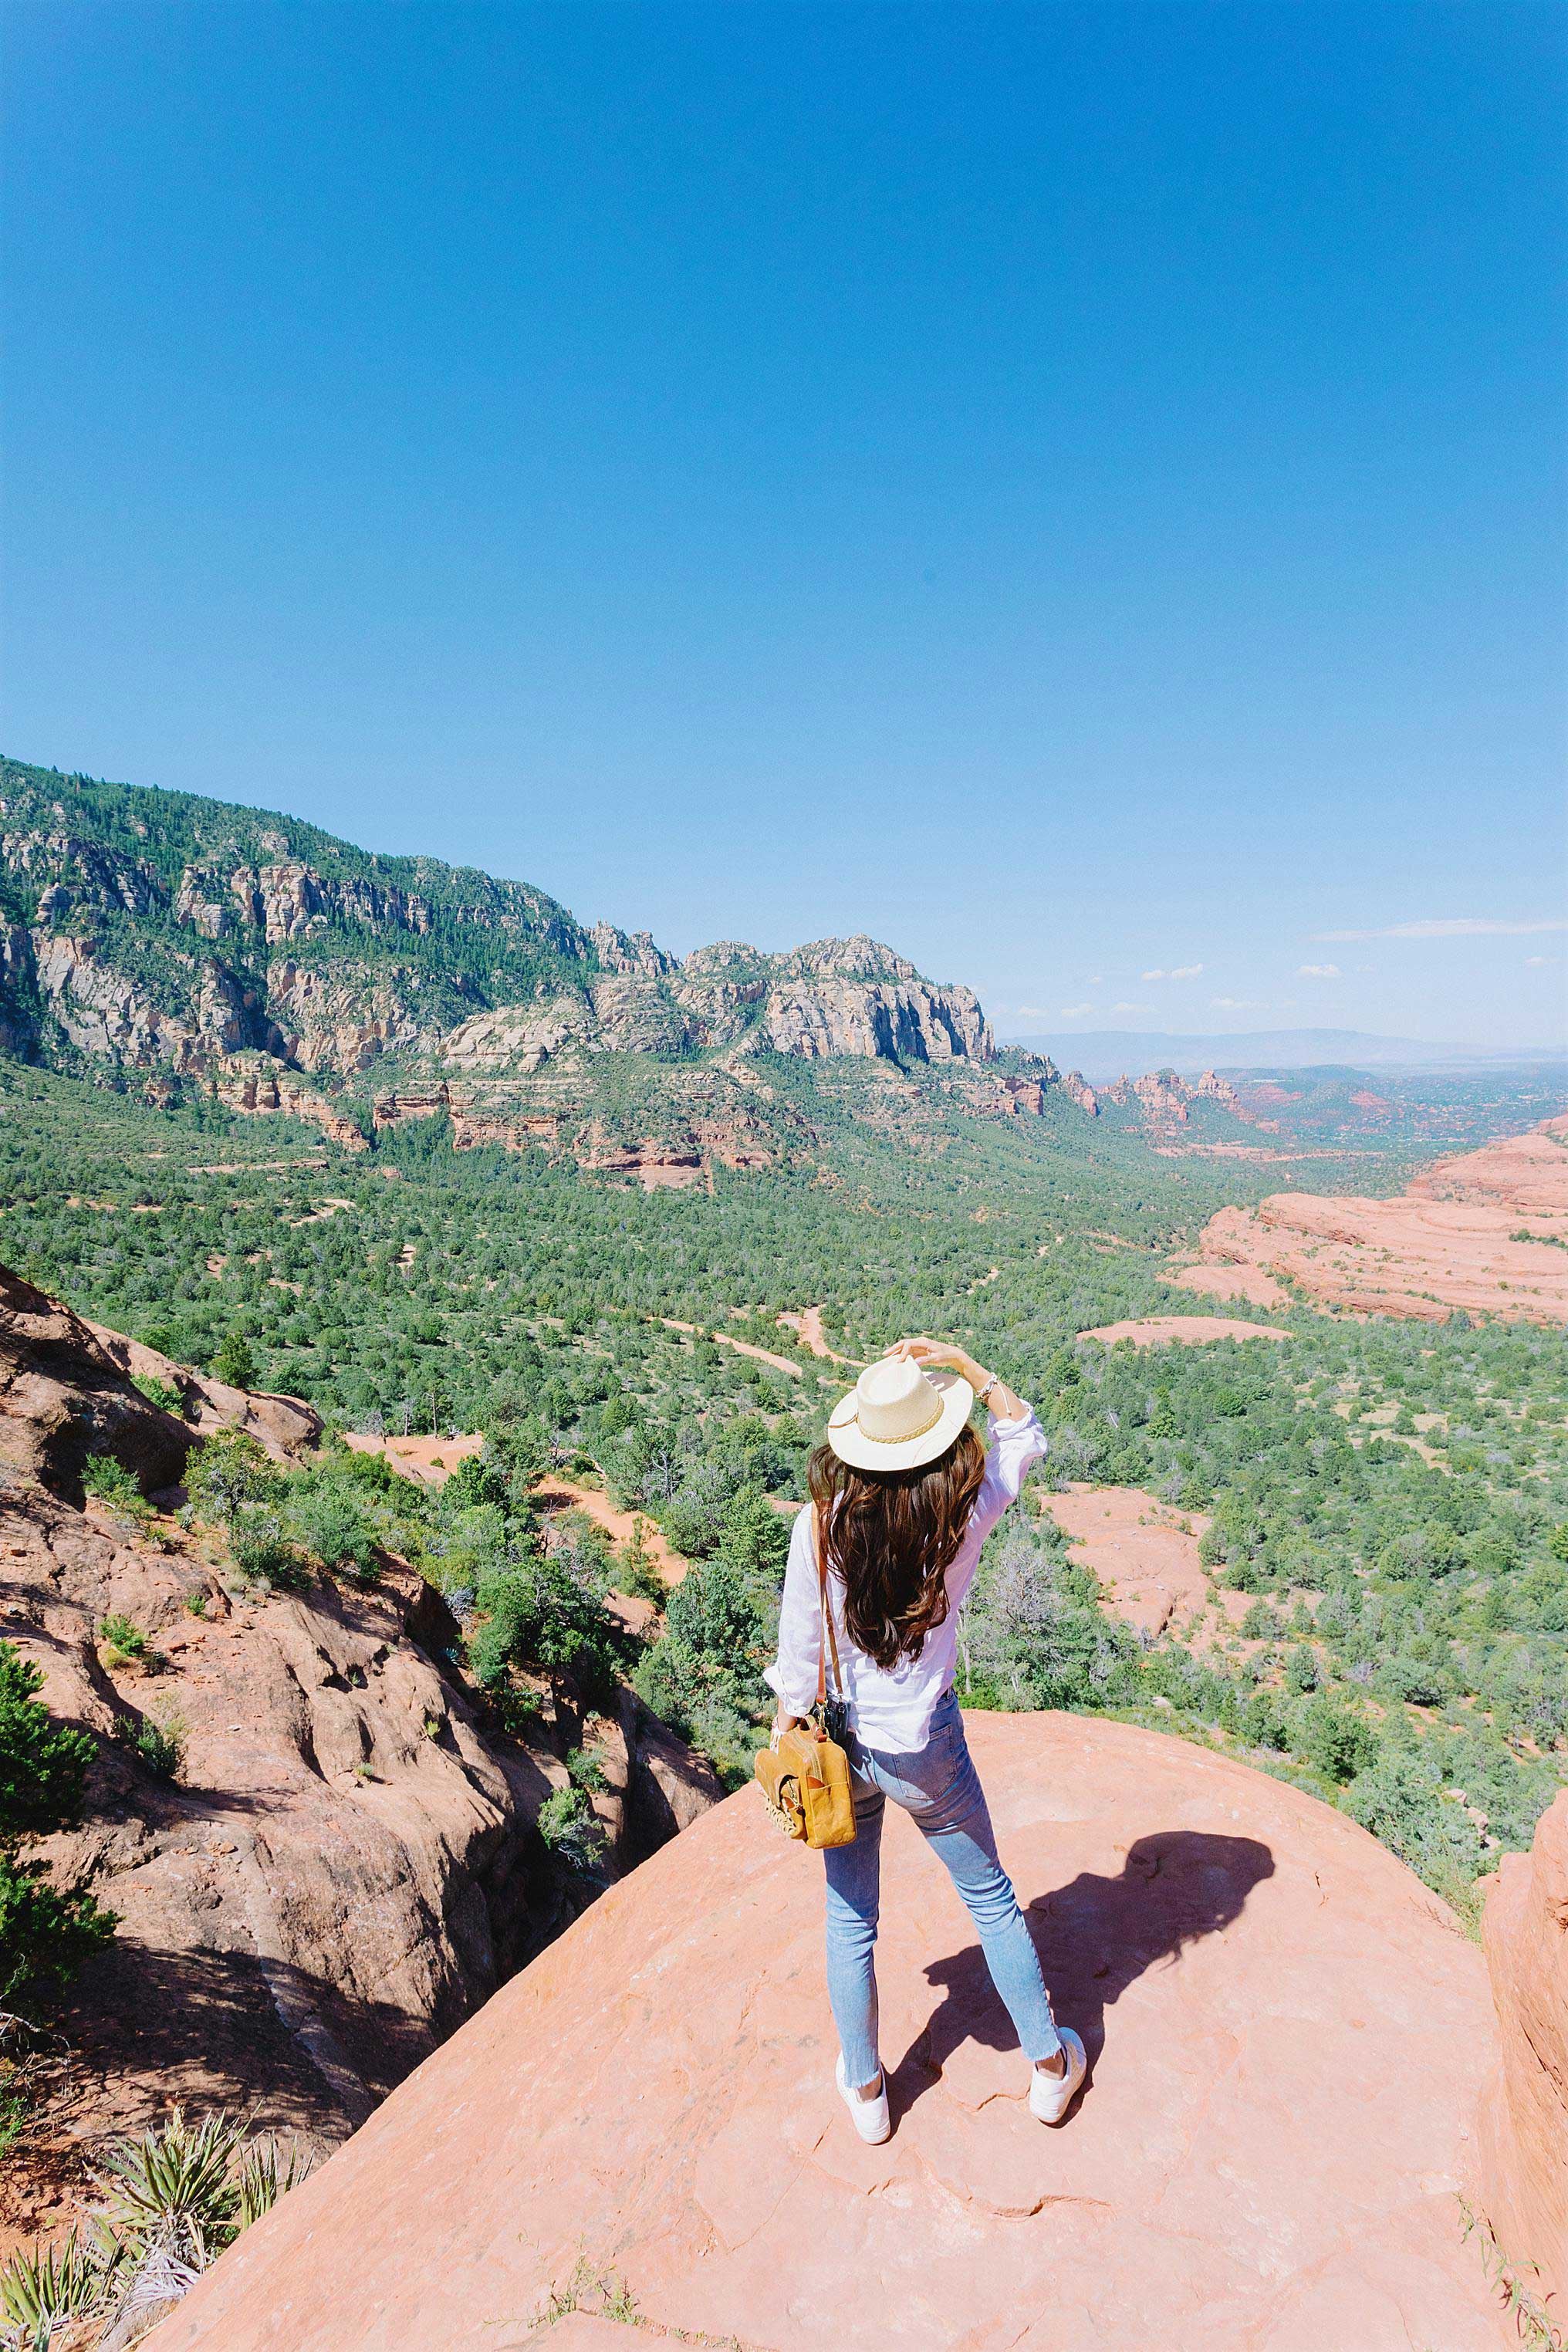 view from the top sedona arizona Jeep Tour safari with travel blogger photographer Diana Elizabeth